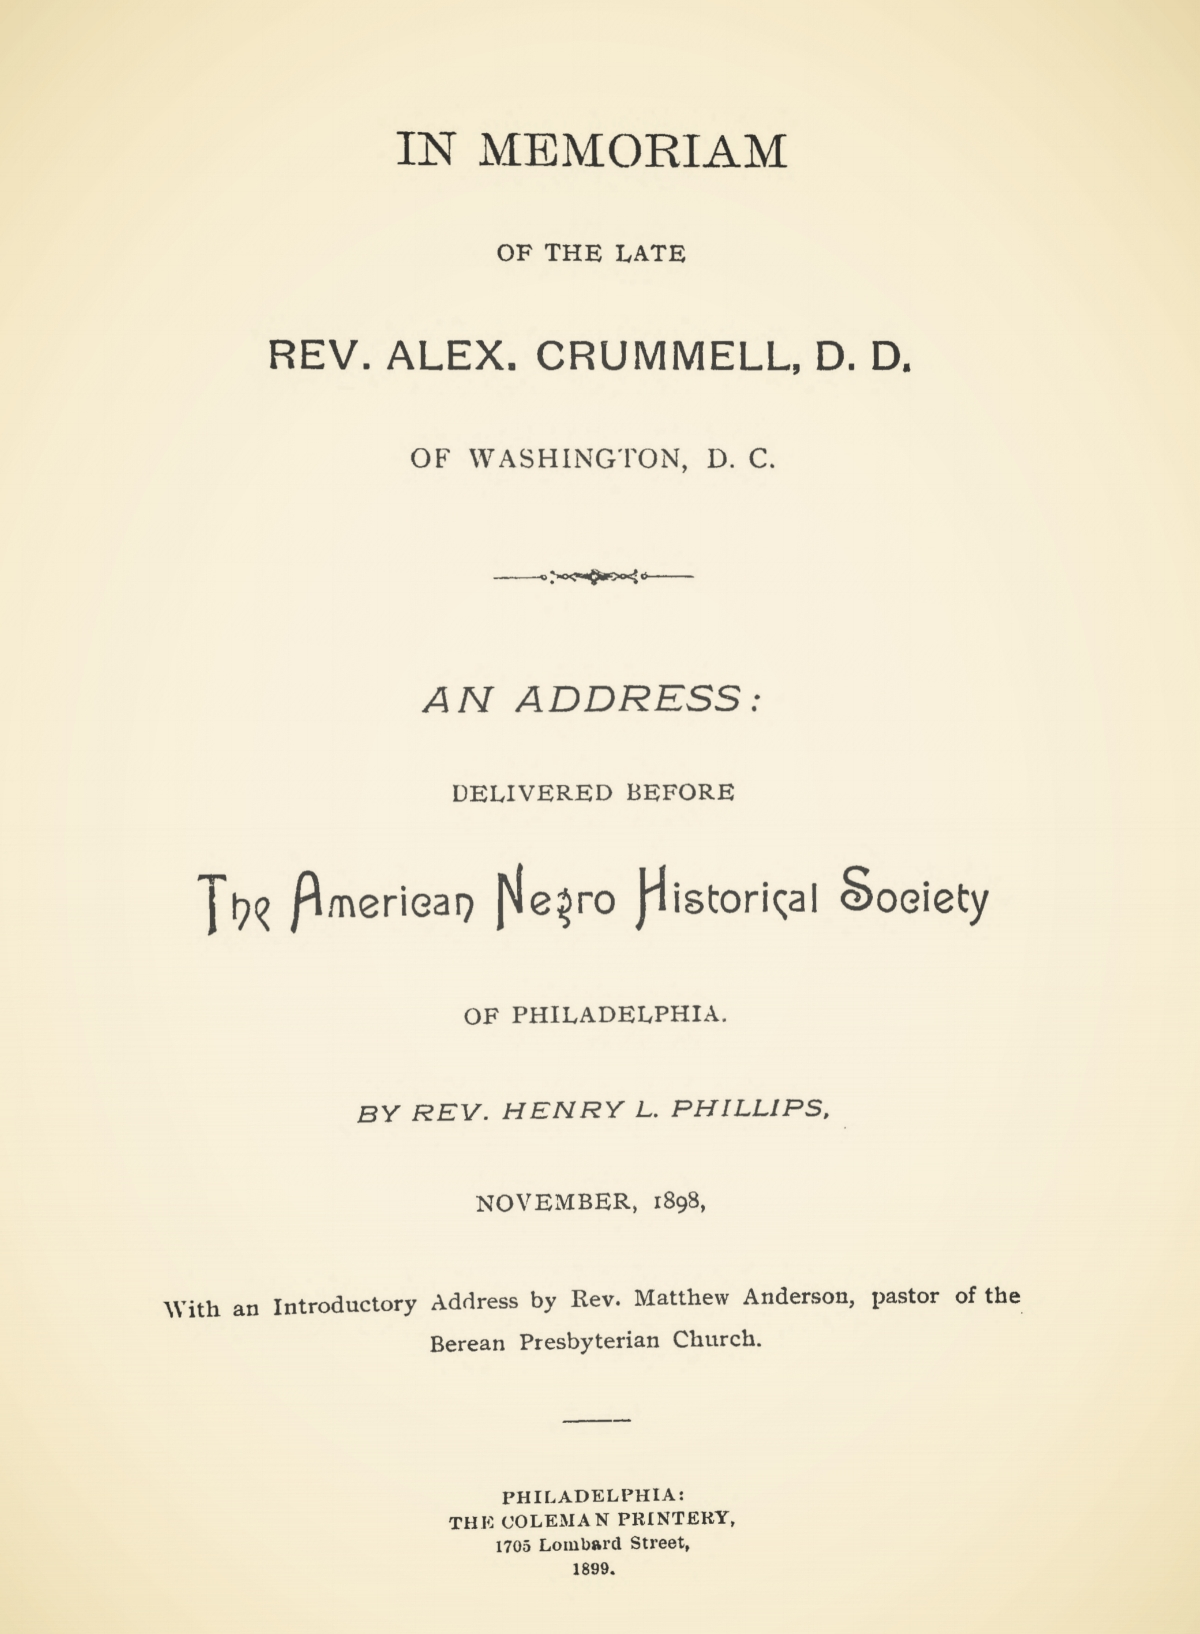 Anderson, Matthew, Introductory Address Title Page.jpg